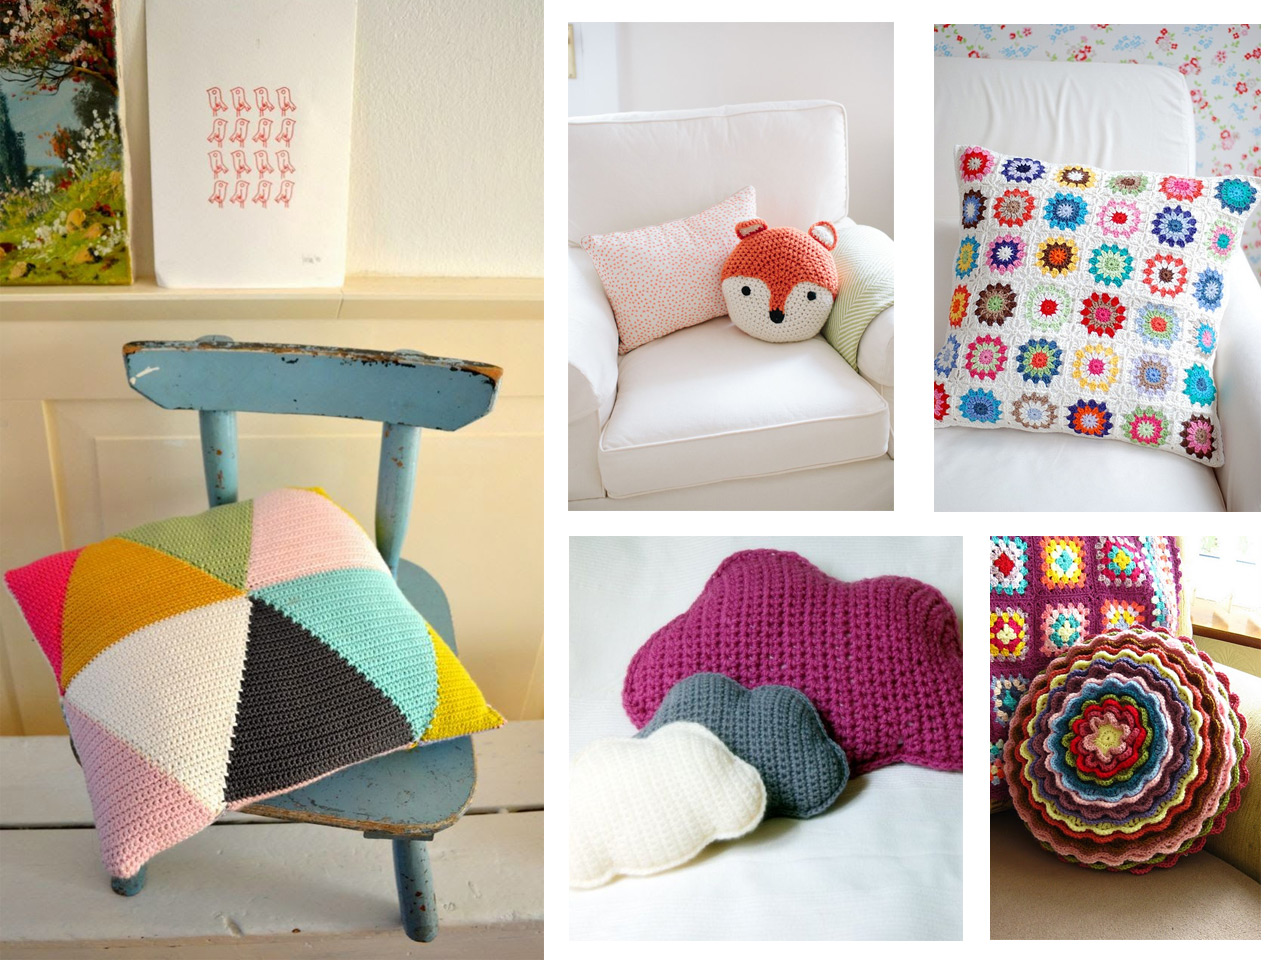 10 propuestas para decorar tu casa con crochet for Manualidades faciles para decorar la casa